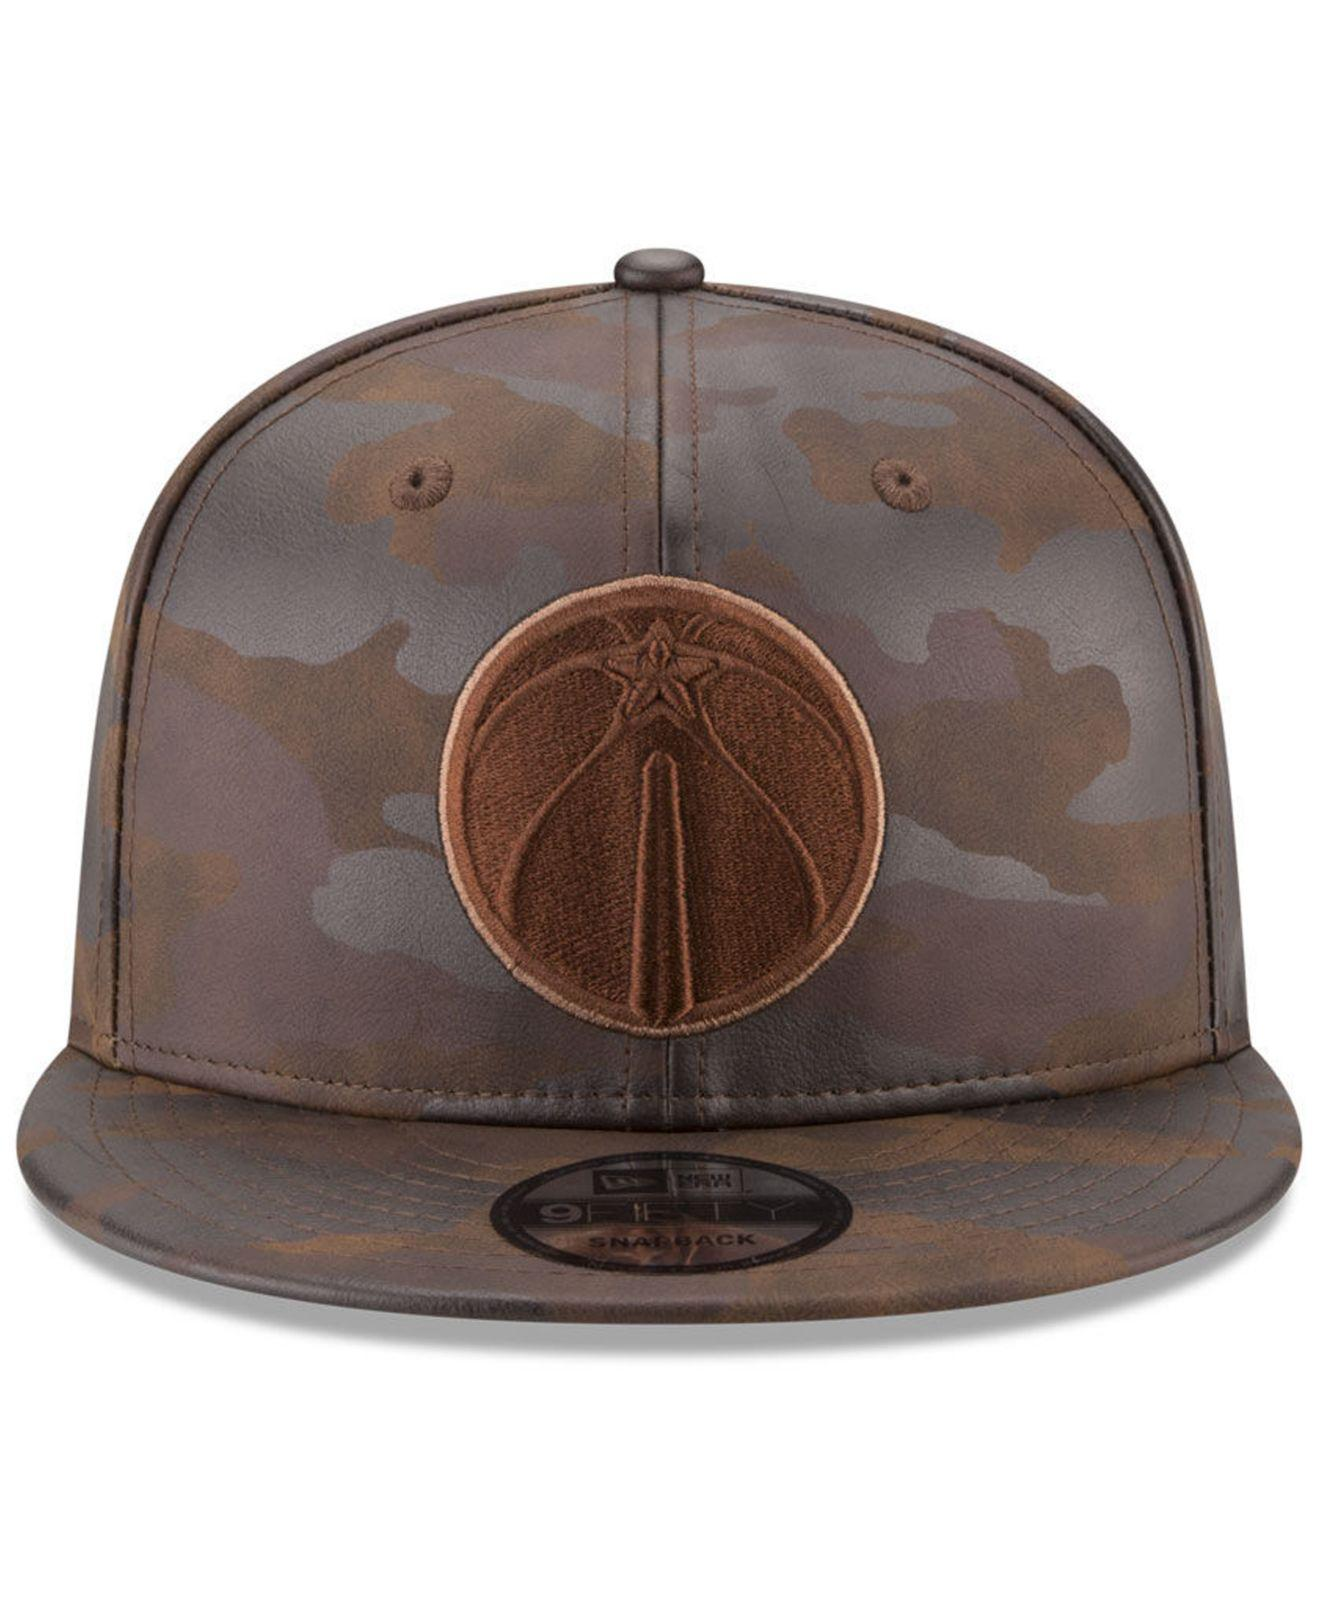 c90836db8ba ... wholesale lyst ktz butter so camo 9fifty snapback cap in brown for men  eff23 af436